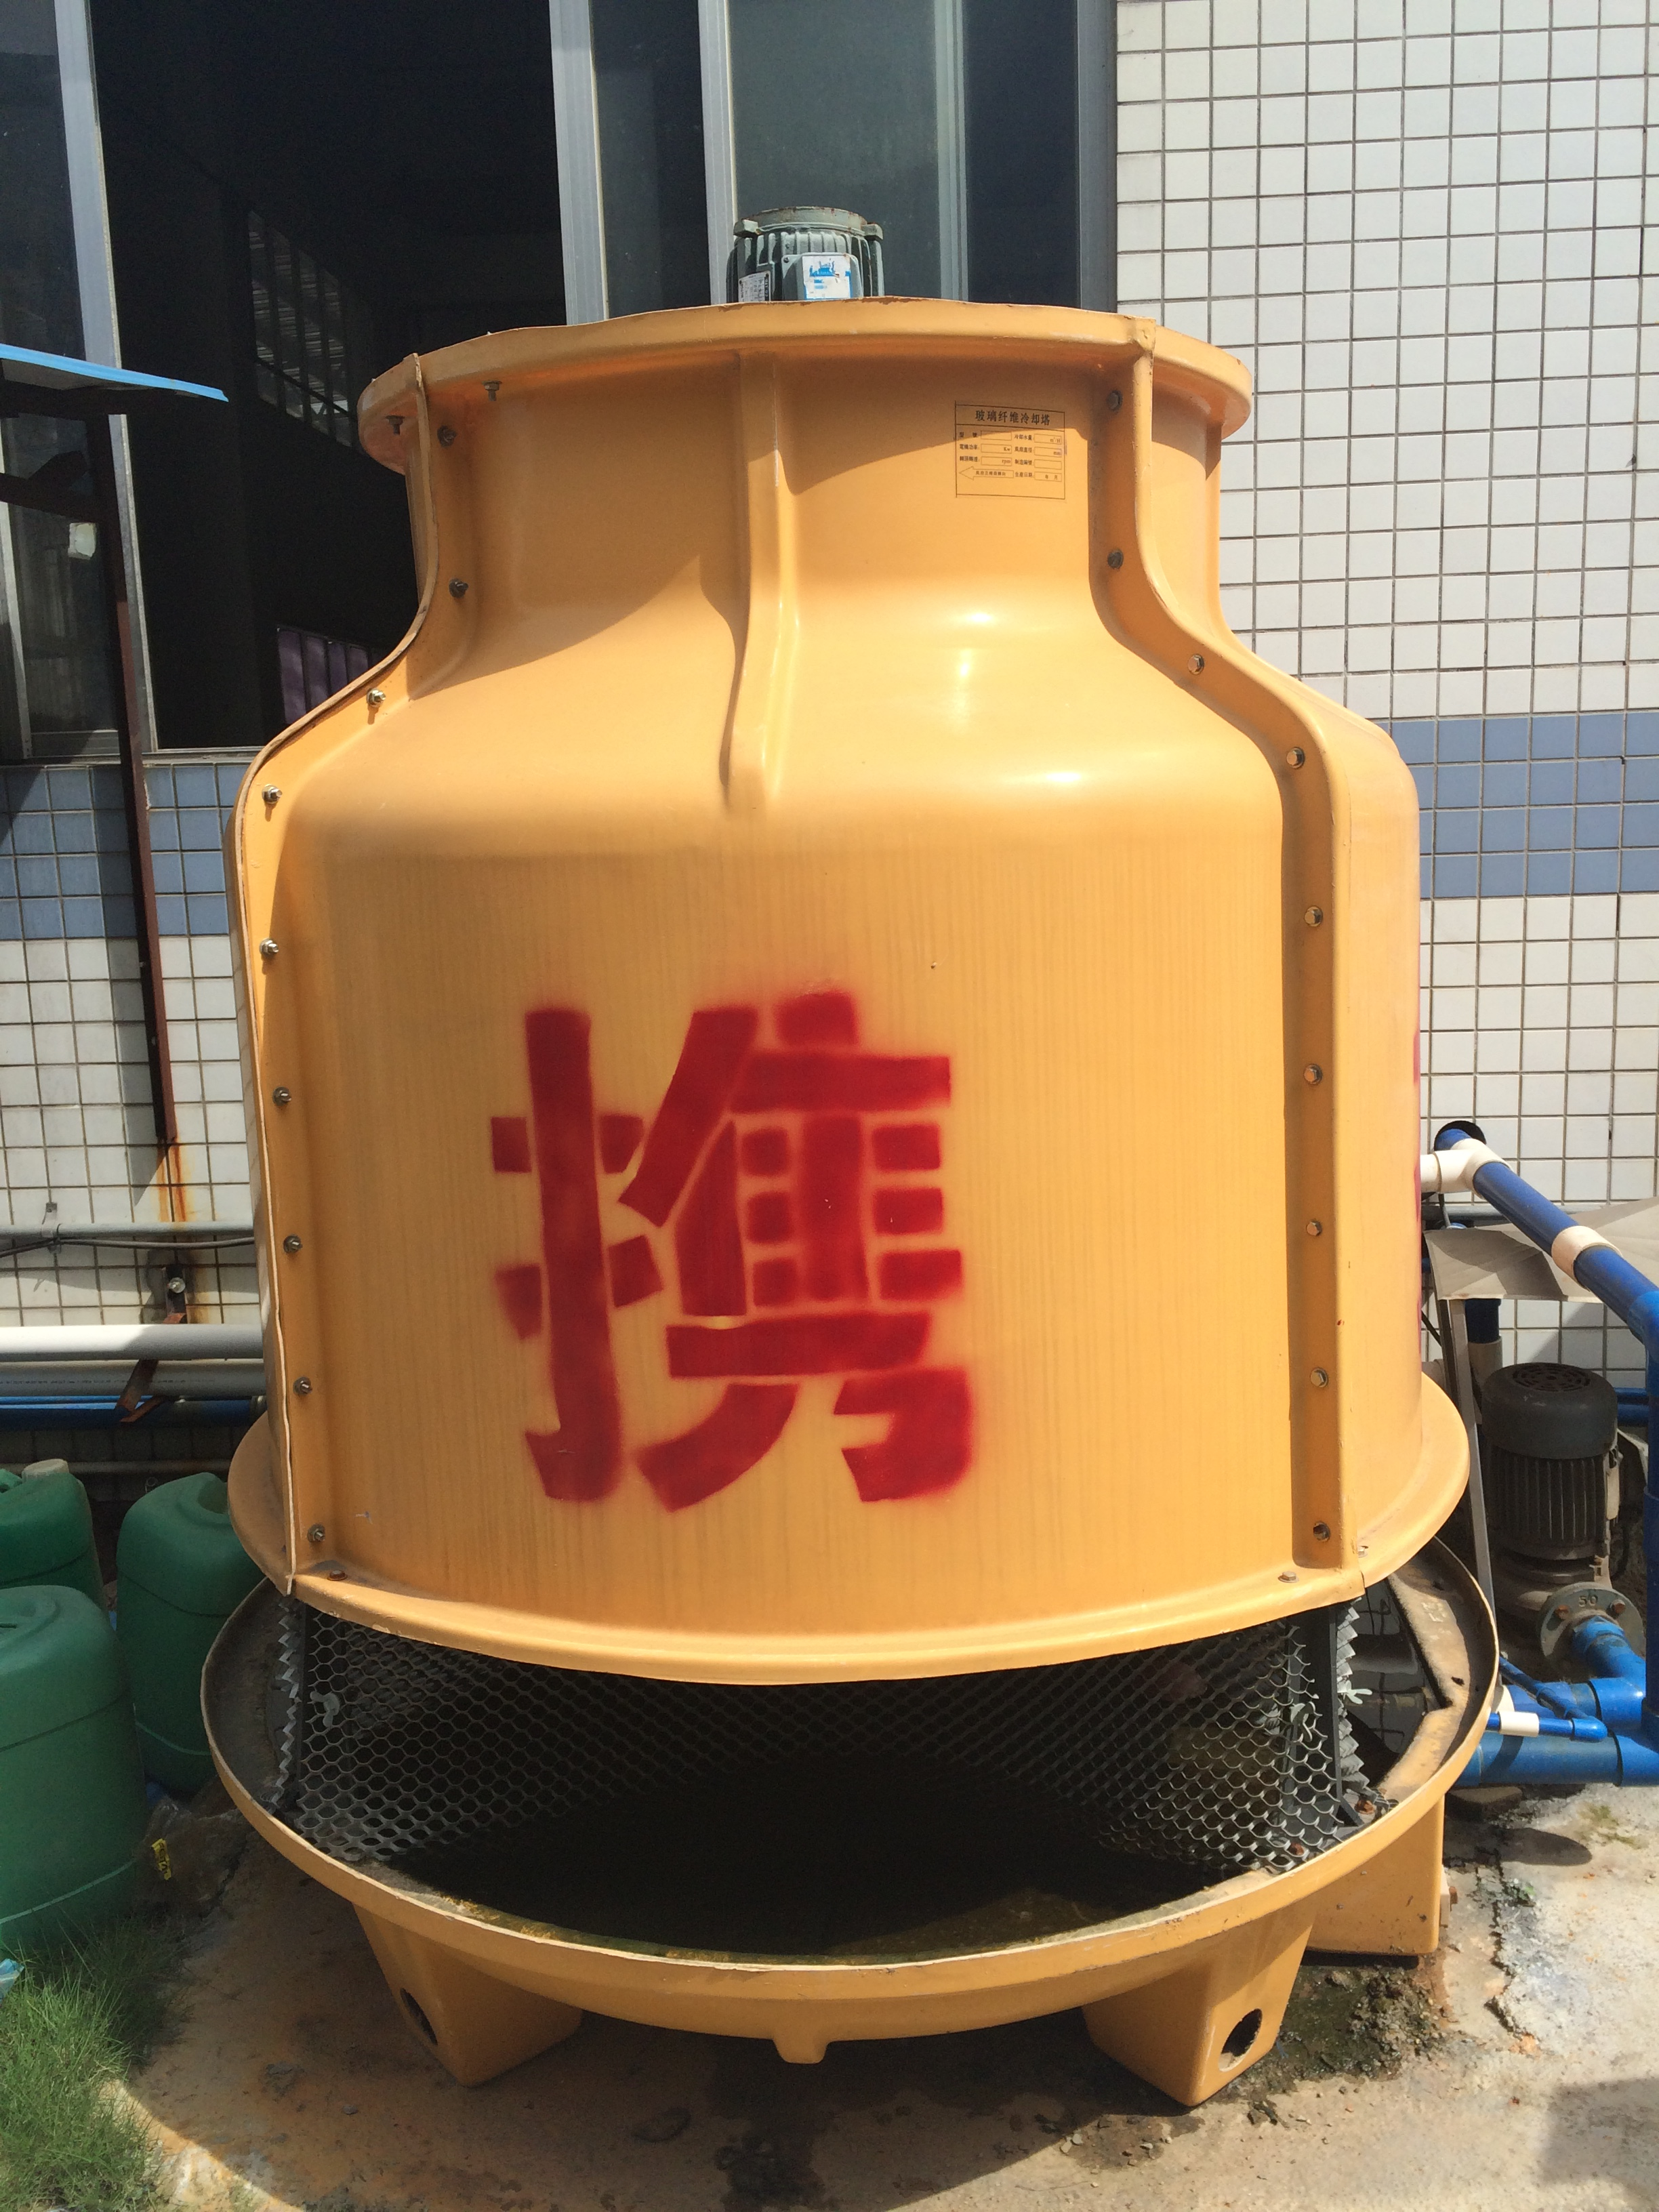 ROUND COOLING TOWER SERIES